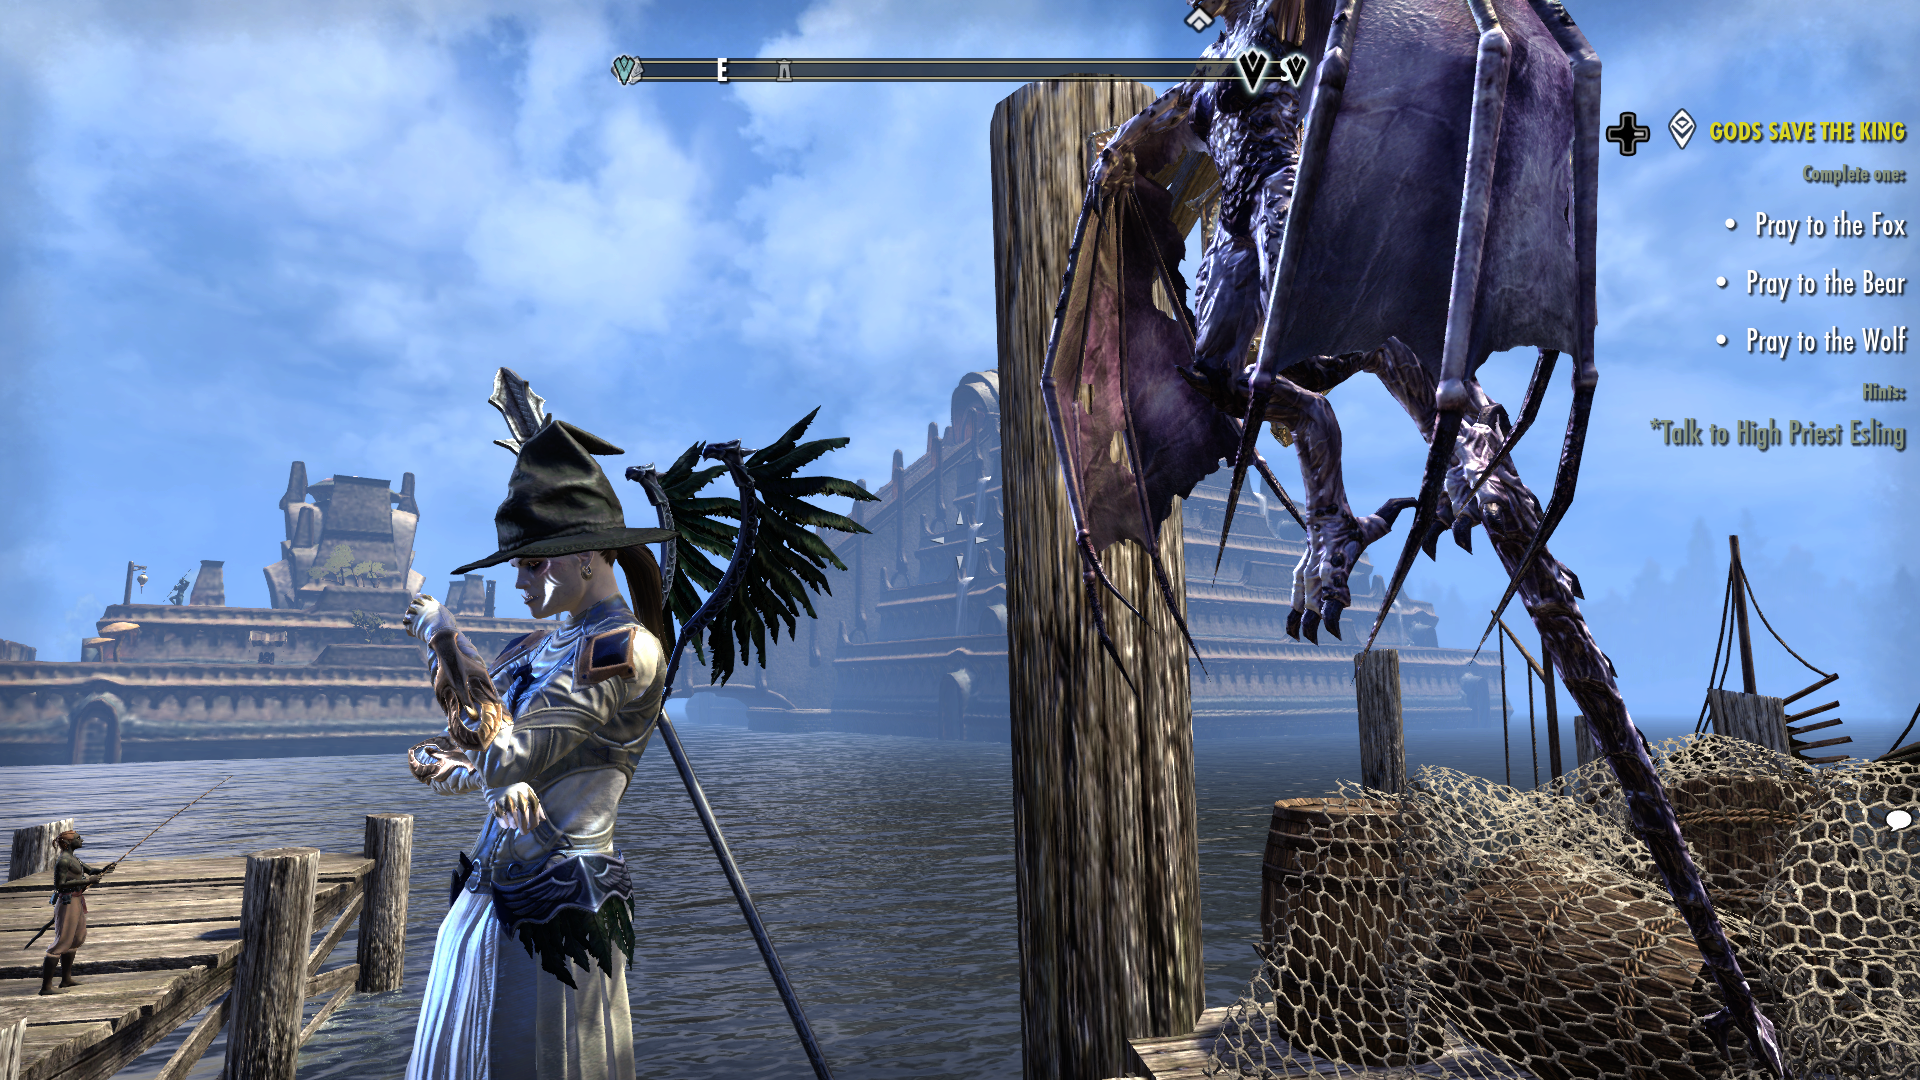 The author's OC stands on a dock, contemplating her winged armor. She is accompanied by a harpy-like winged companion. Elder Scrolls Online, Zenimax Online Studios, Bethesda Softworks, 2014.